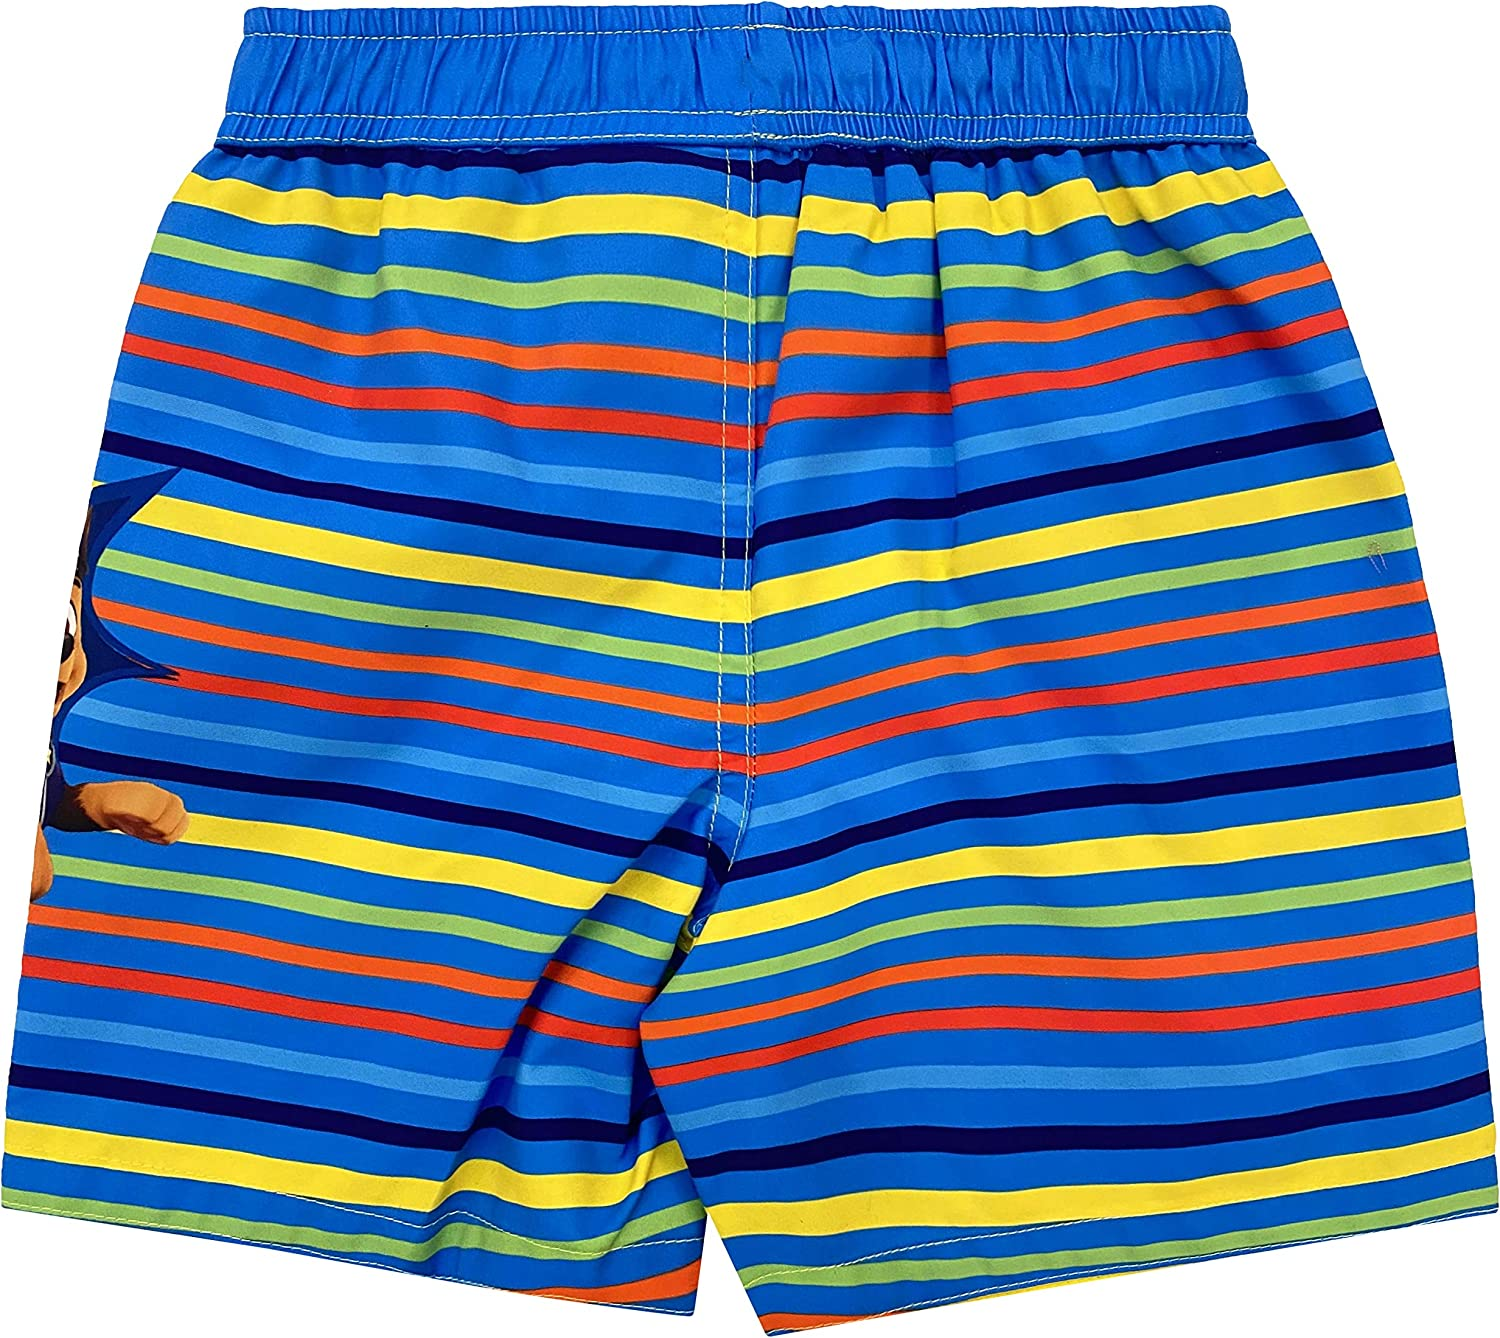 Dreamwave Toddler Boy Swim Trunk Board Short